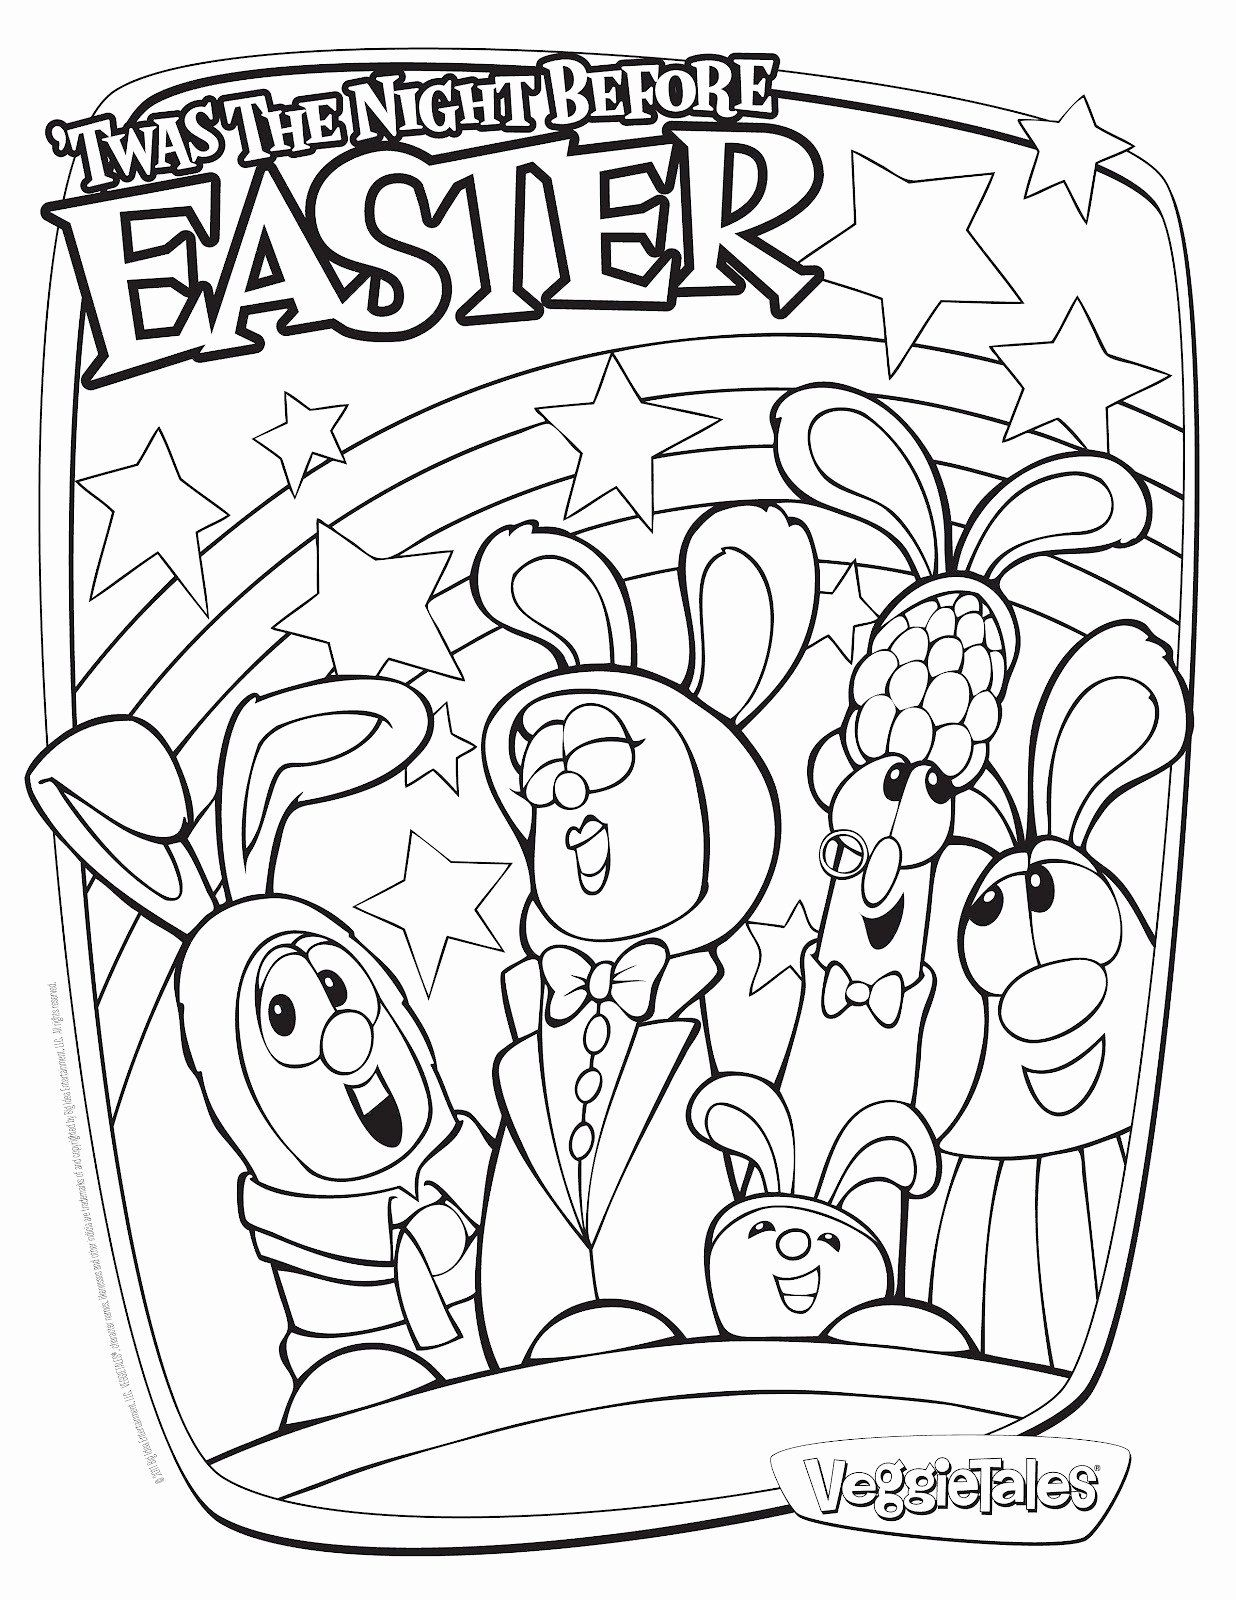 Johnny Appleseed Coloring Sheet Luxury Johnny Appleseed Coloriage In News Dindig In 2020 Coloring Pages Inspirational Thanksgiving Coloring Pages Easter Coloring Pages